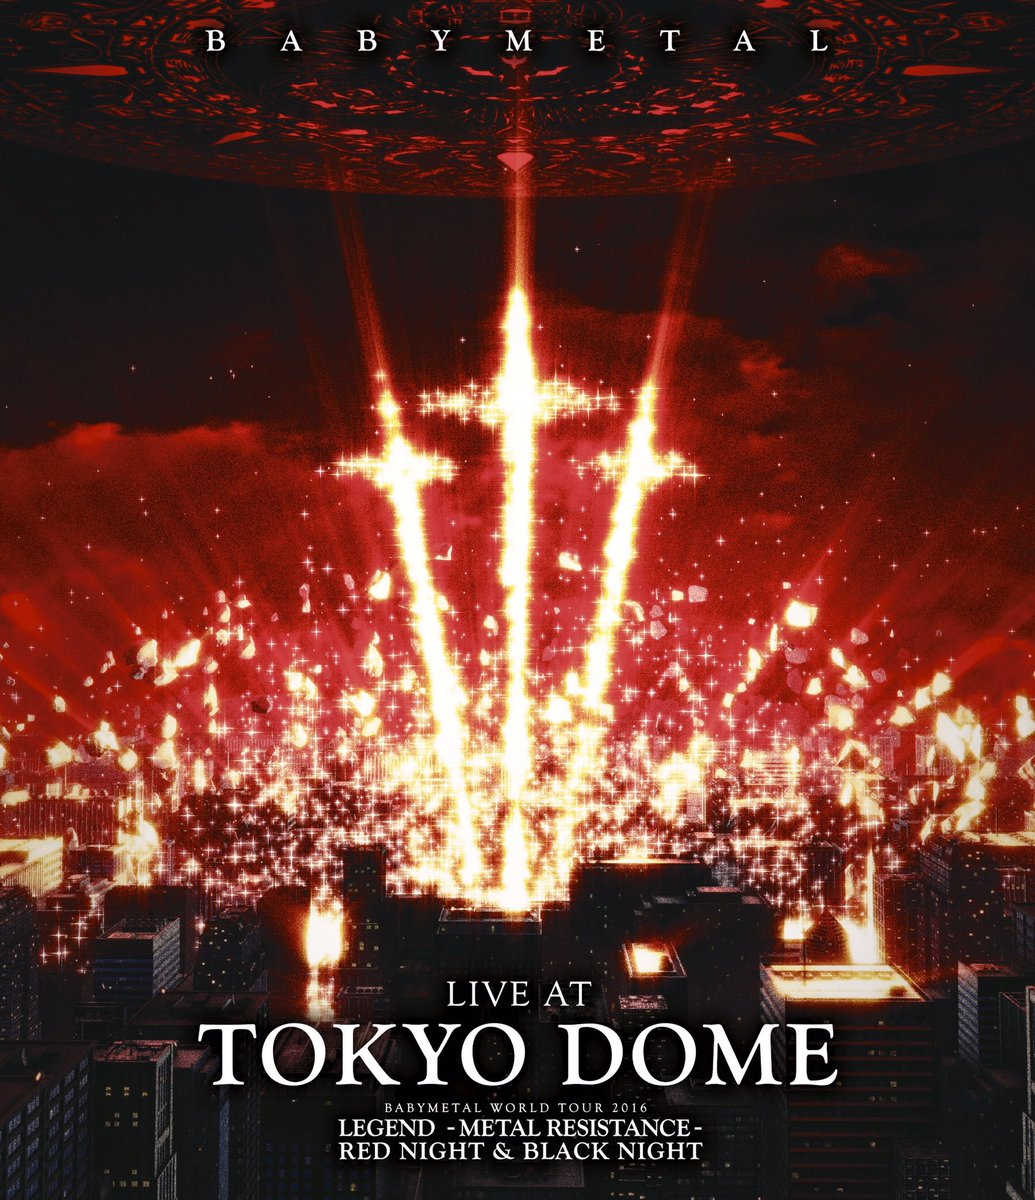 4/12(水) 「LIVE AT TOKYO DOME」発売DEATH!!#BABYMETAL #TOKYODOME https;//t.co/y1X6vpRW2W